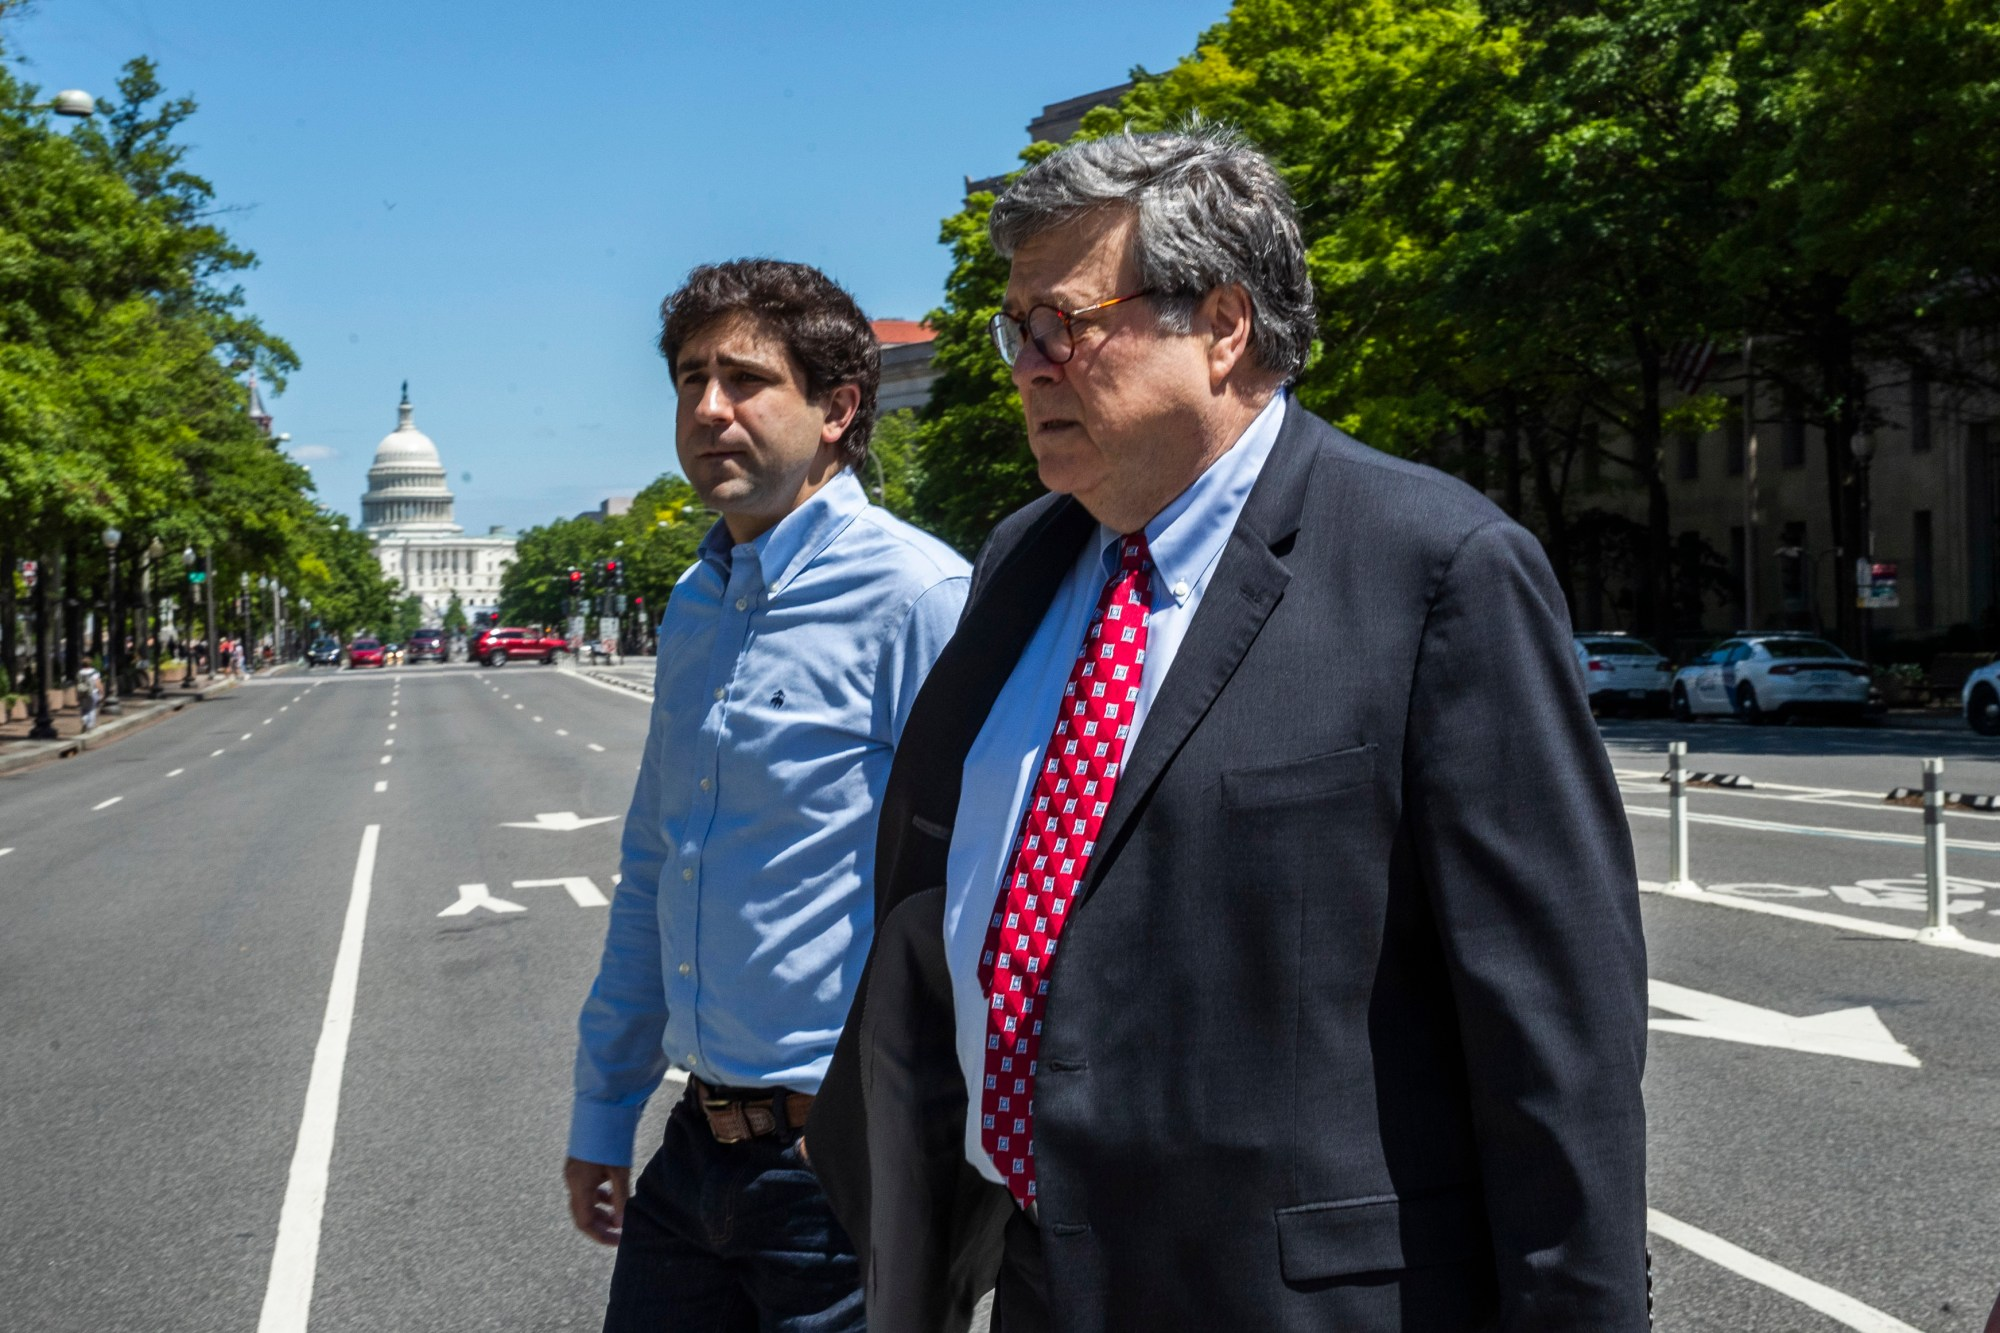 William Barr, Muriel Bowser, Peter Newsham